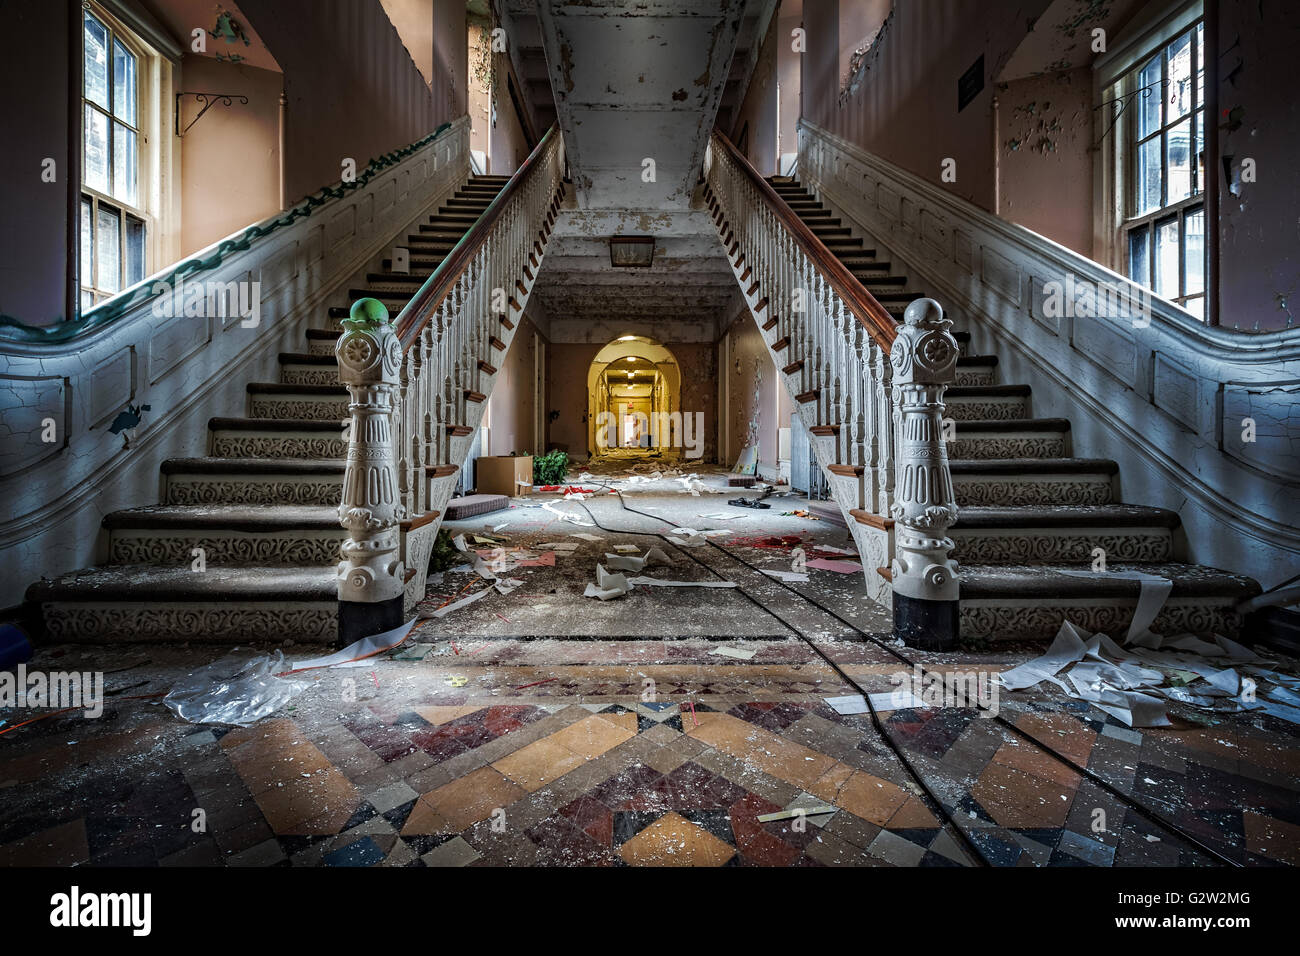 Main entrance with symmetrical stairs of an abandoned psychiatric hospital (demolished in 2015) - Stock Image